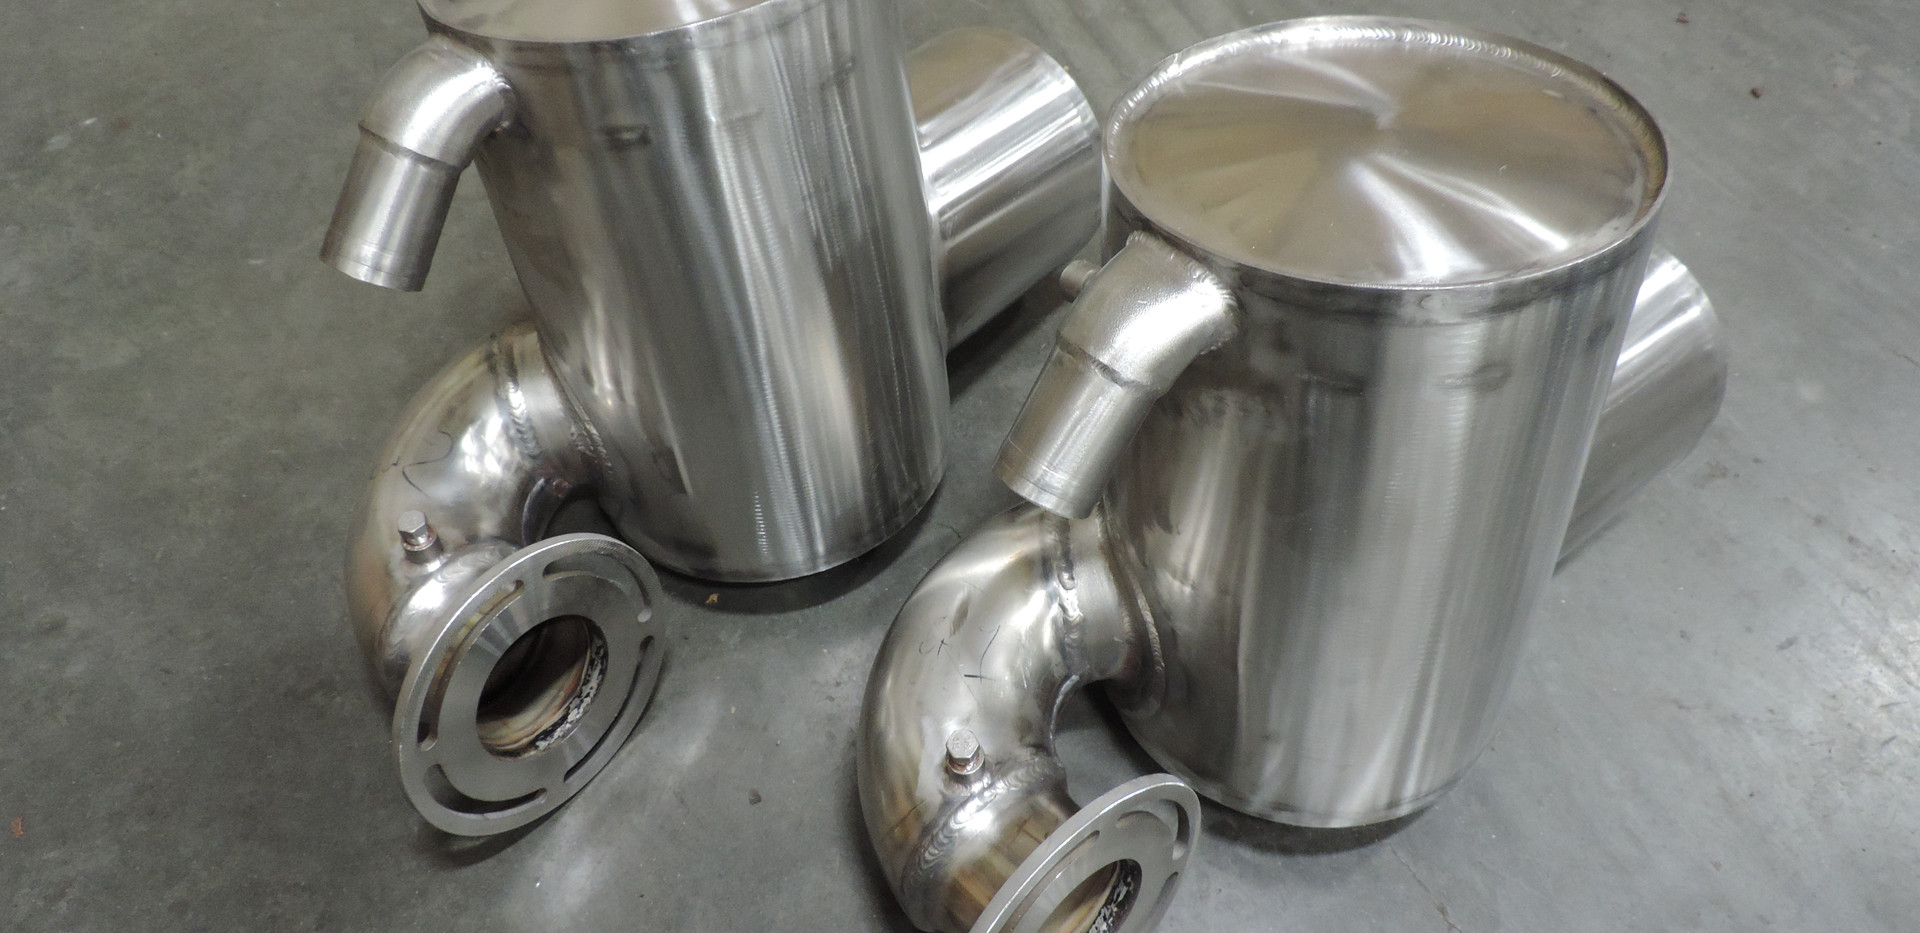 Stock Riser Cans